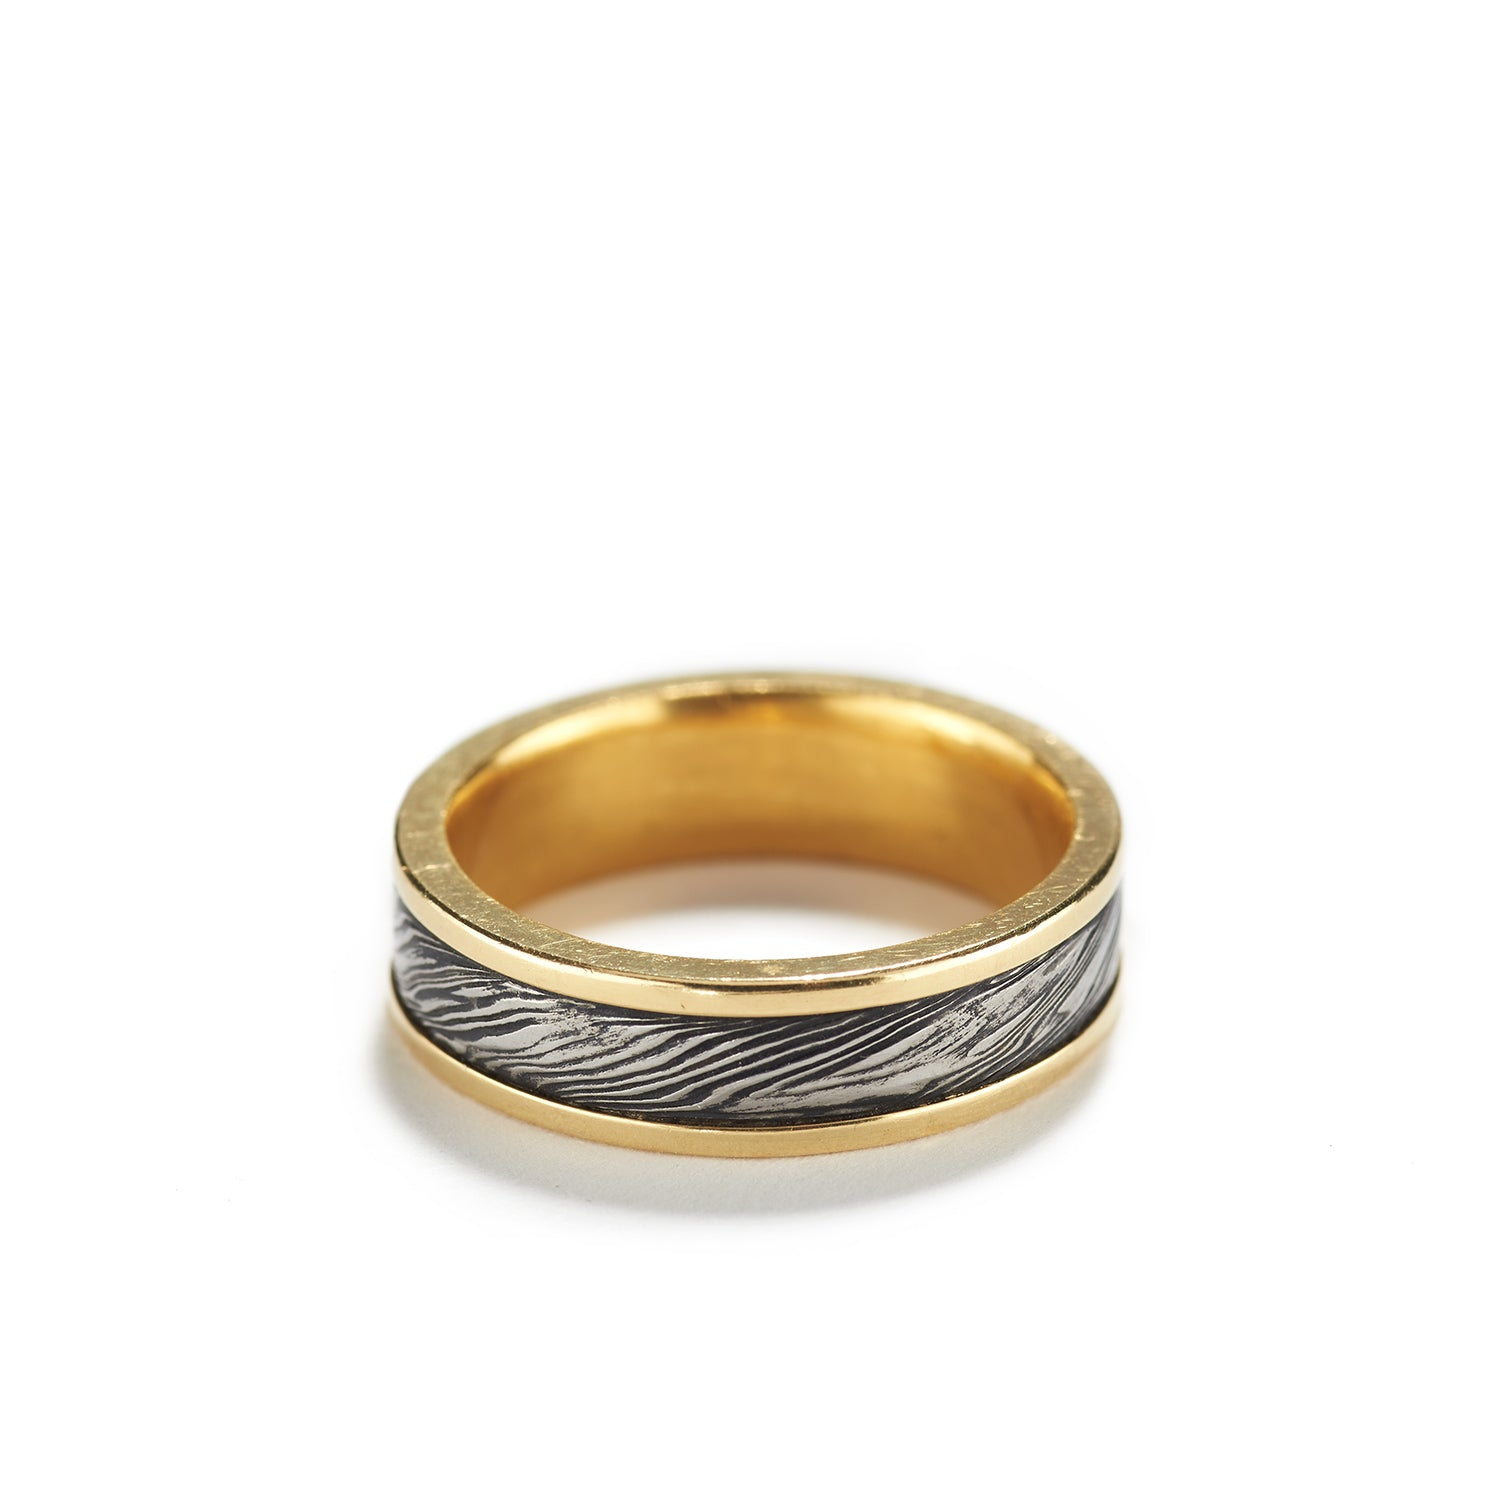 Damascus Steel Ring with Gold~5mm